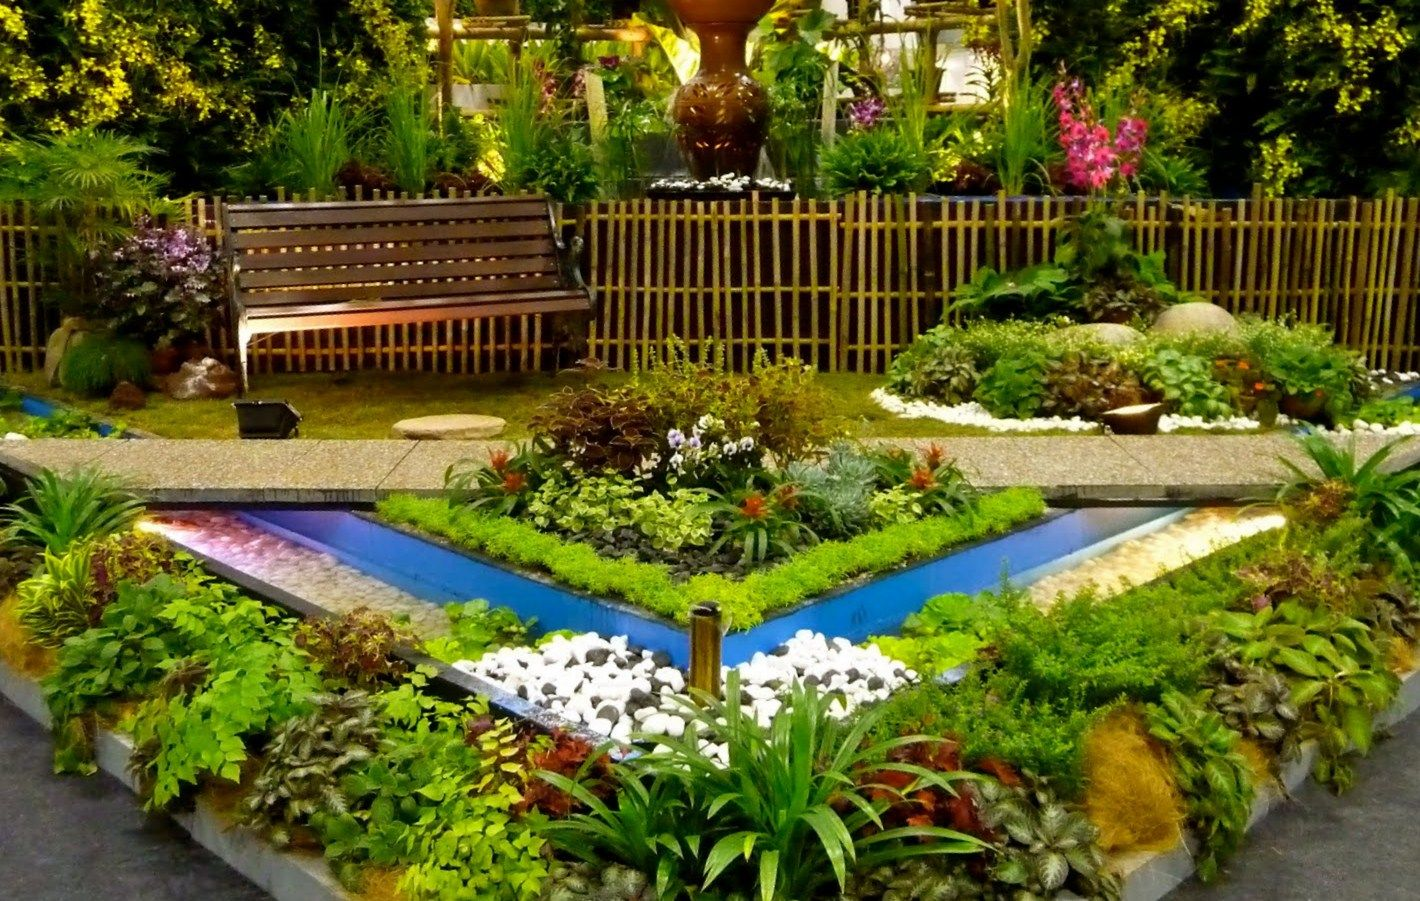 17 Best 1000 images about Garden on Pinterest Patio Garden landscape